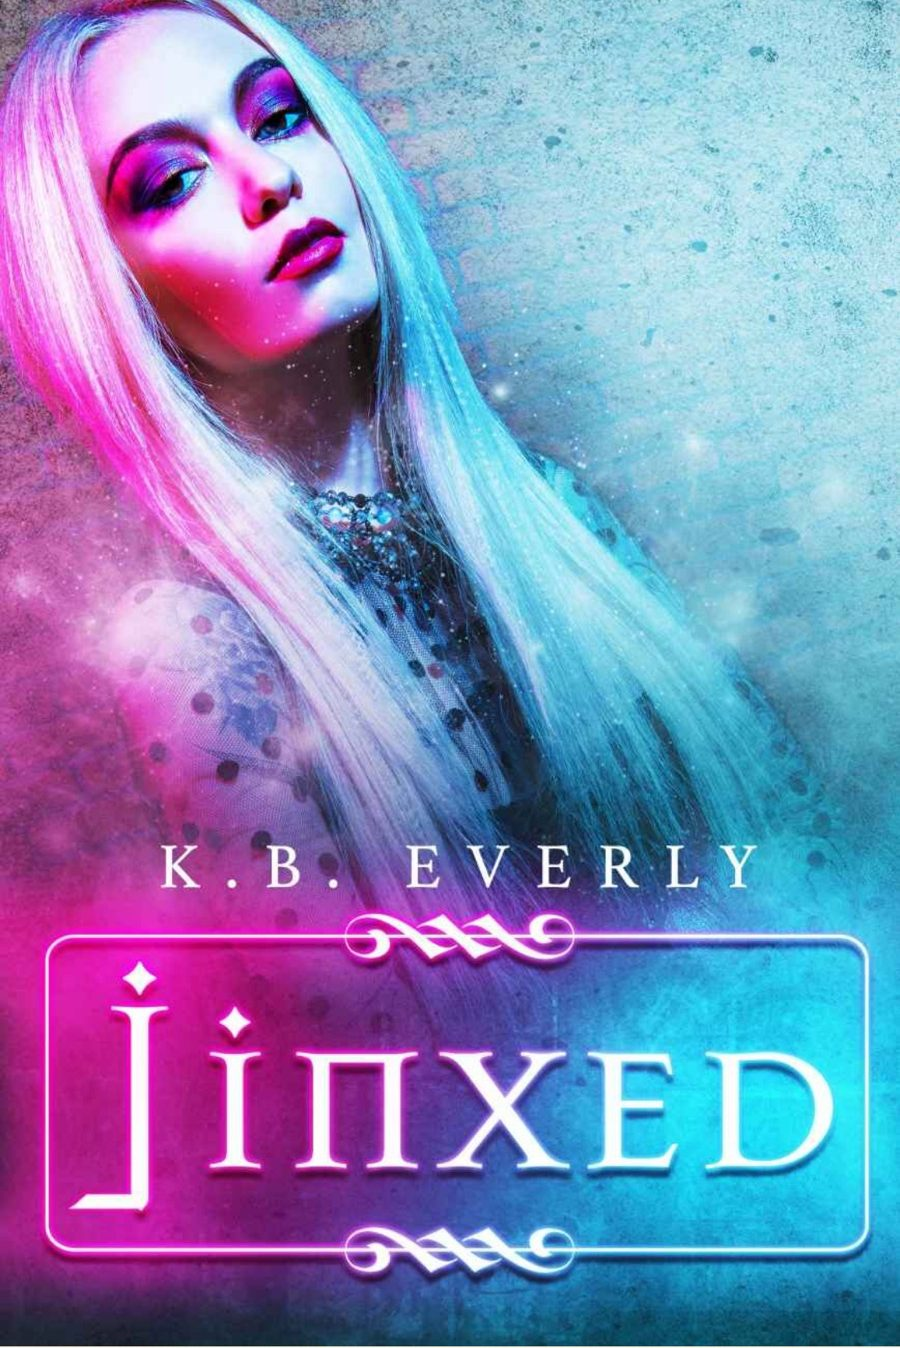 Jinxed by K.B. Everly – A Book Review